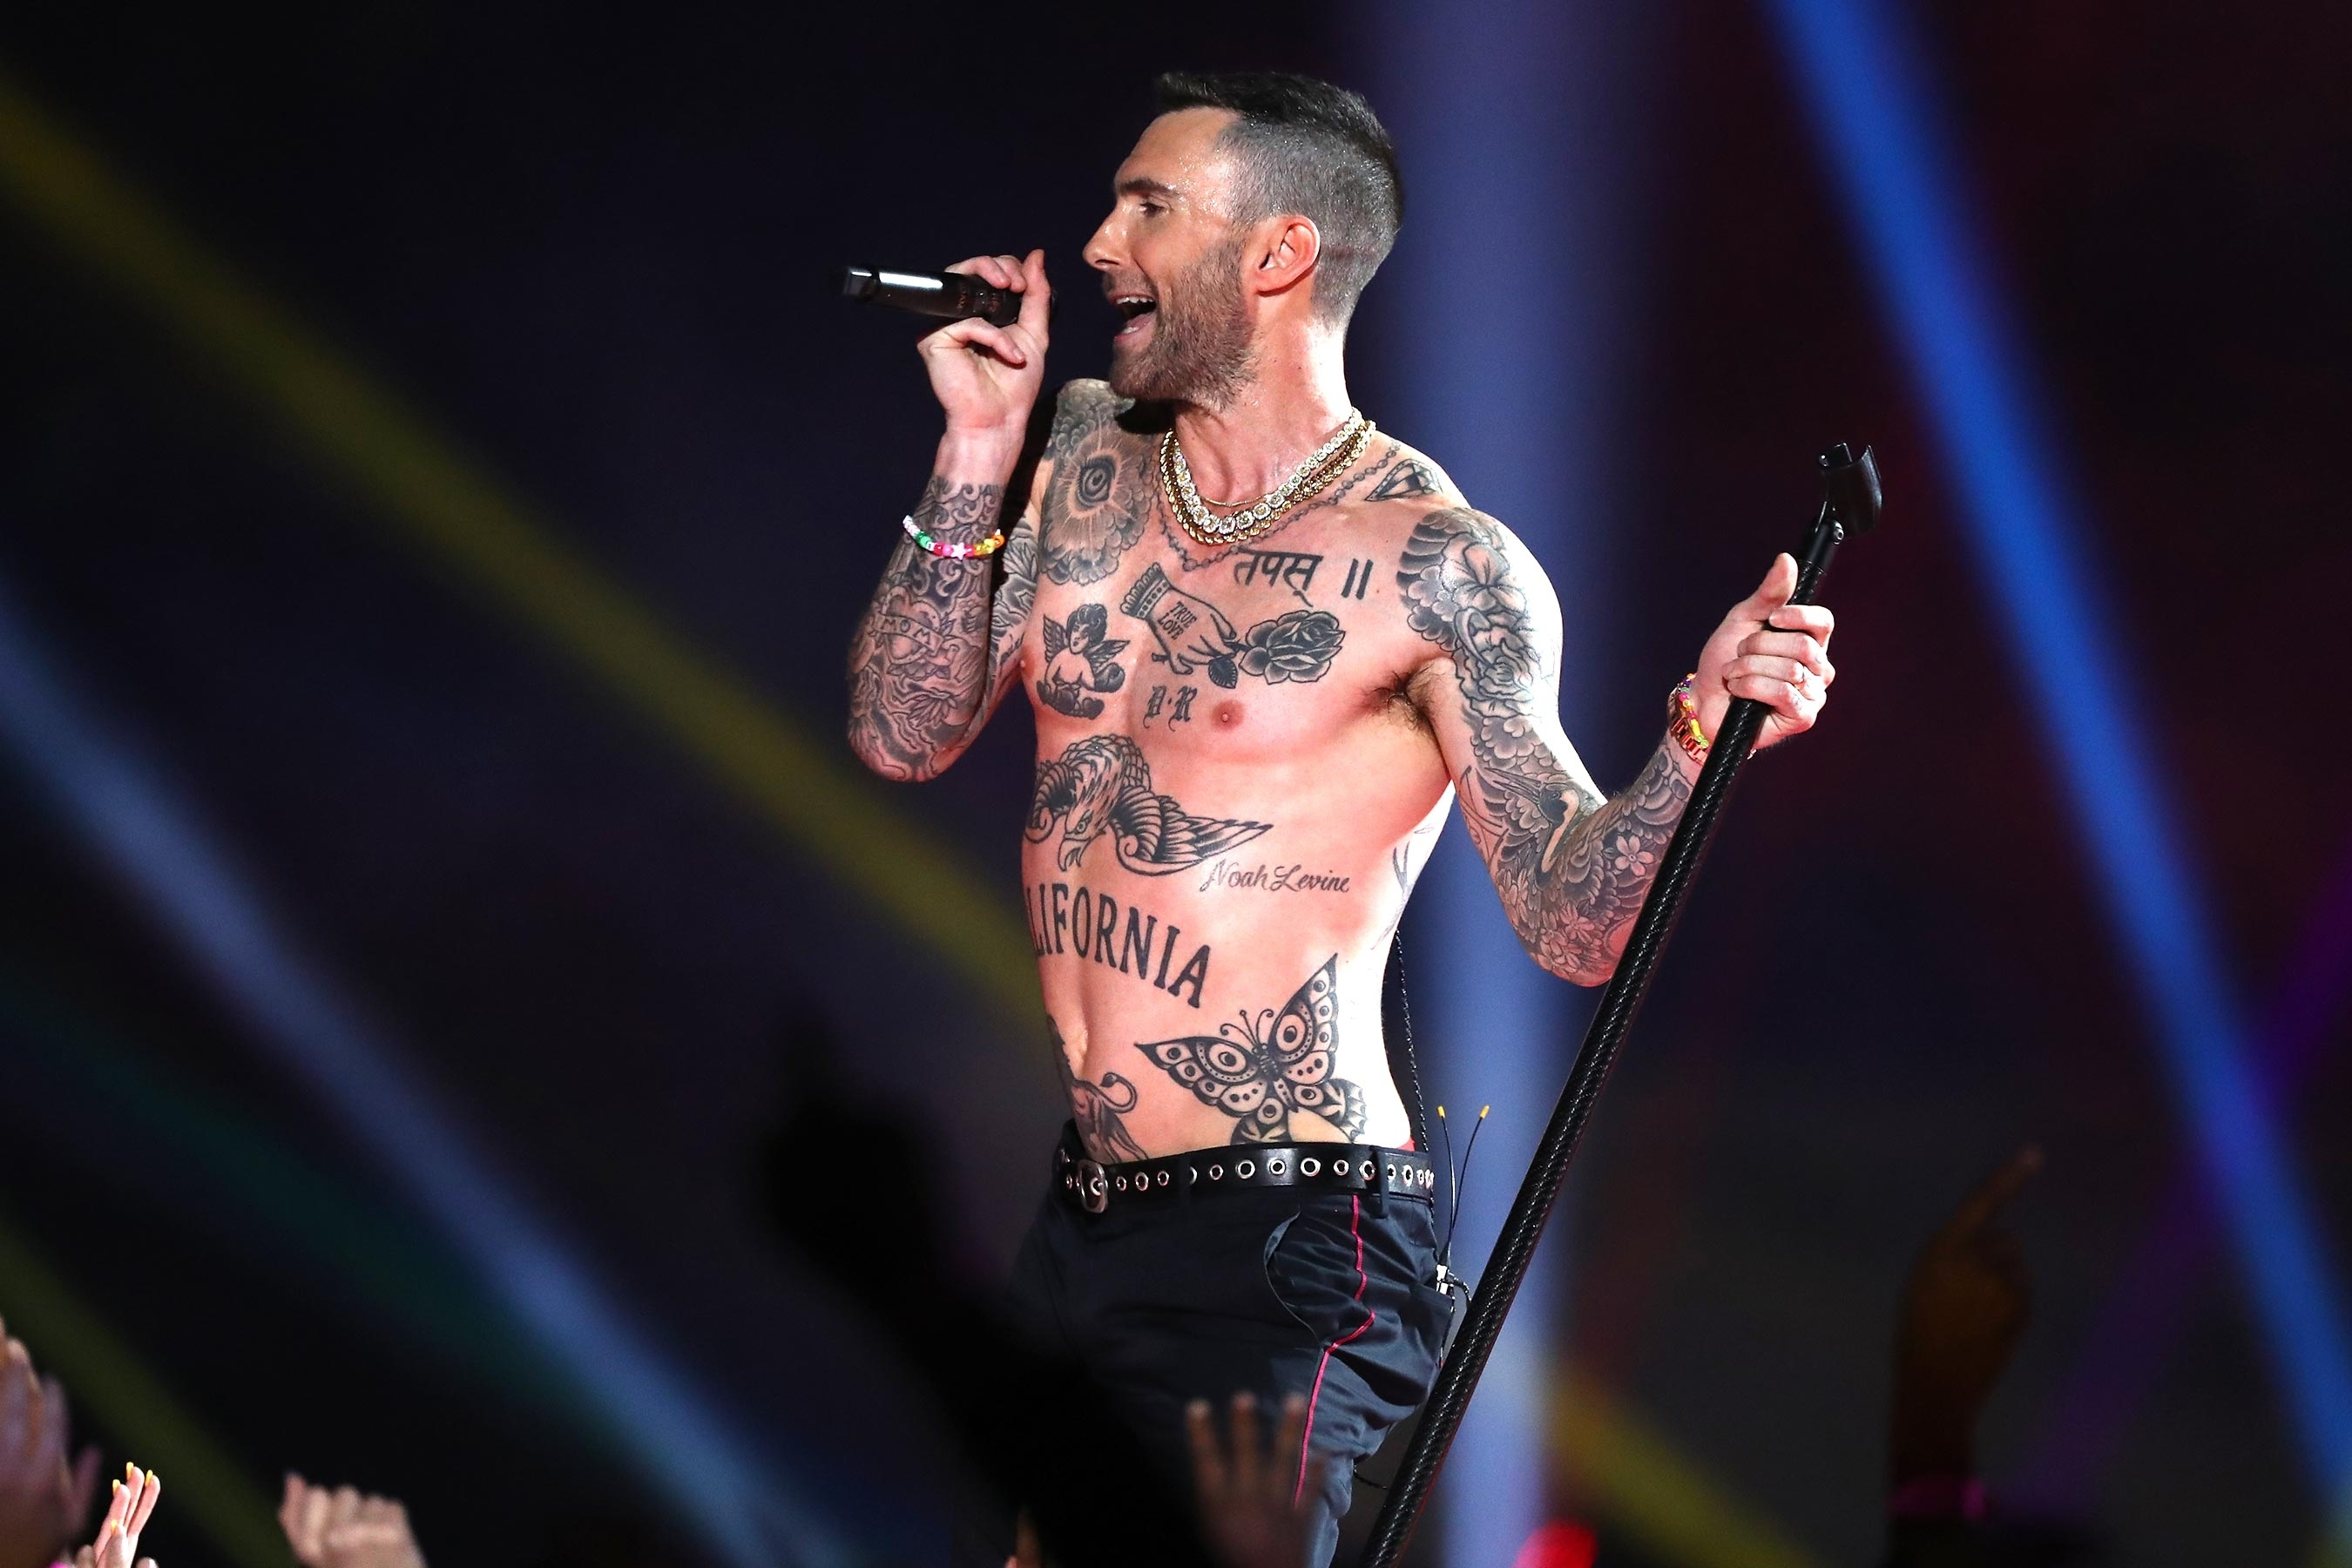 Super Bowl 2019: Maroon 5 Performs During Halftime Show With within Maroon Five Super Bowl 2019